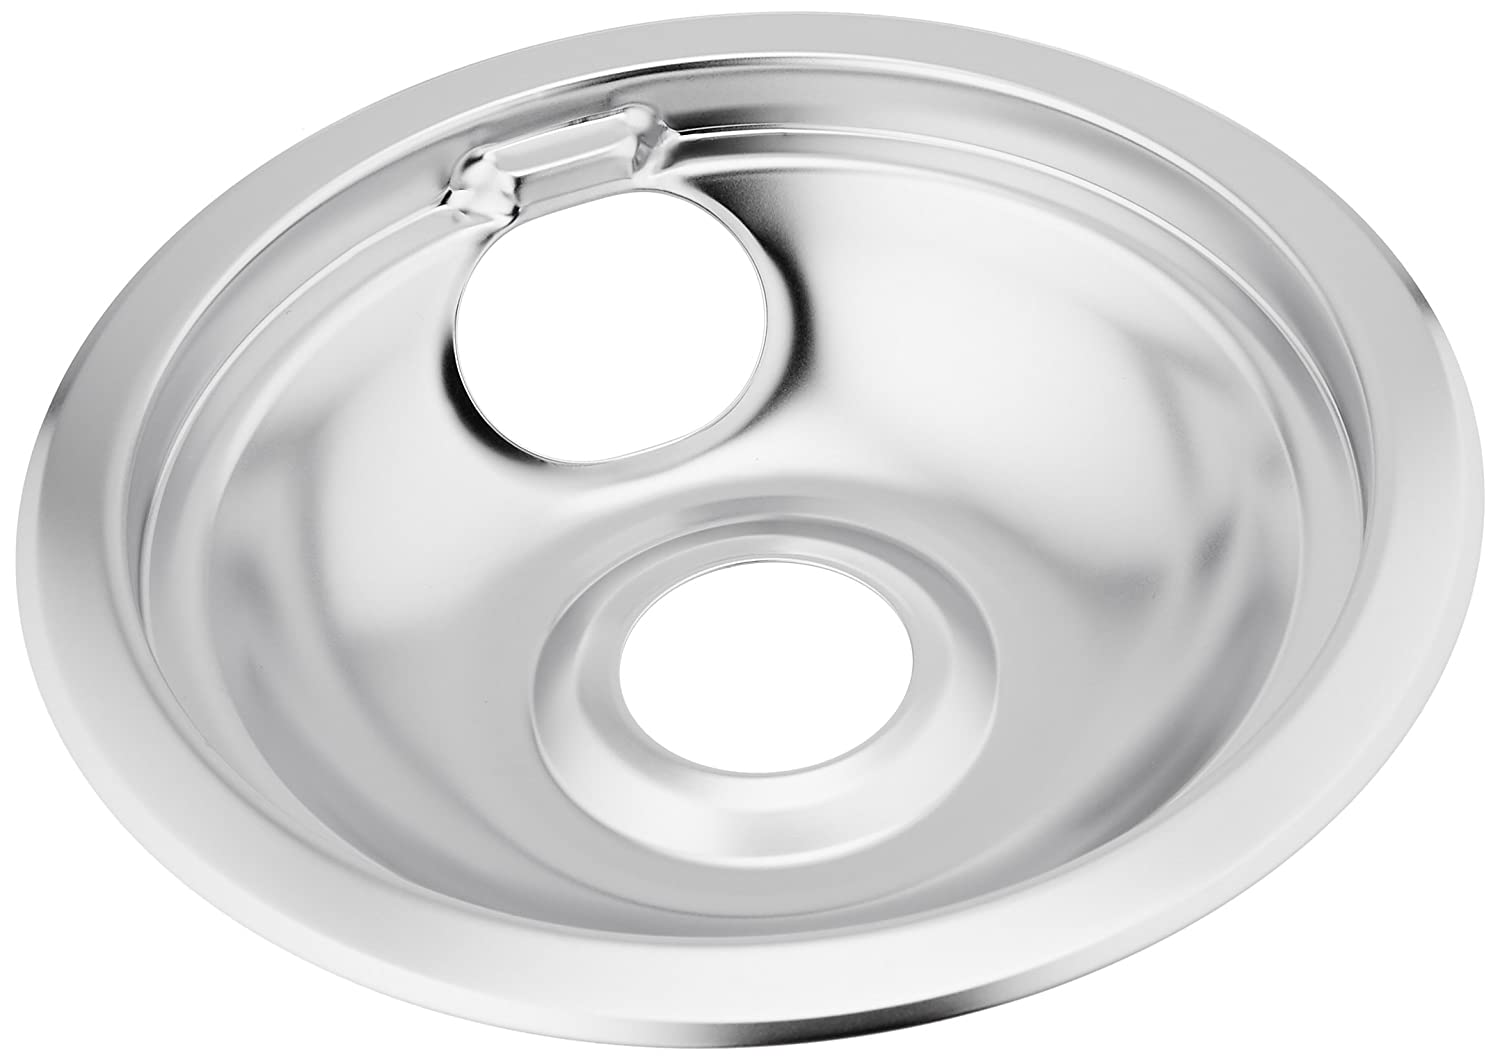 Frigidaire 316048414 6-Inch Chrome Pan for Range